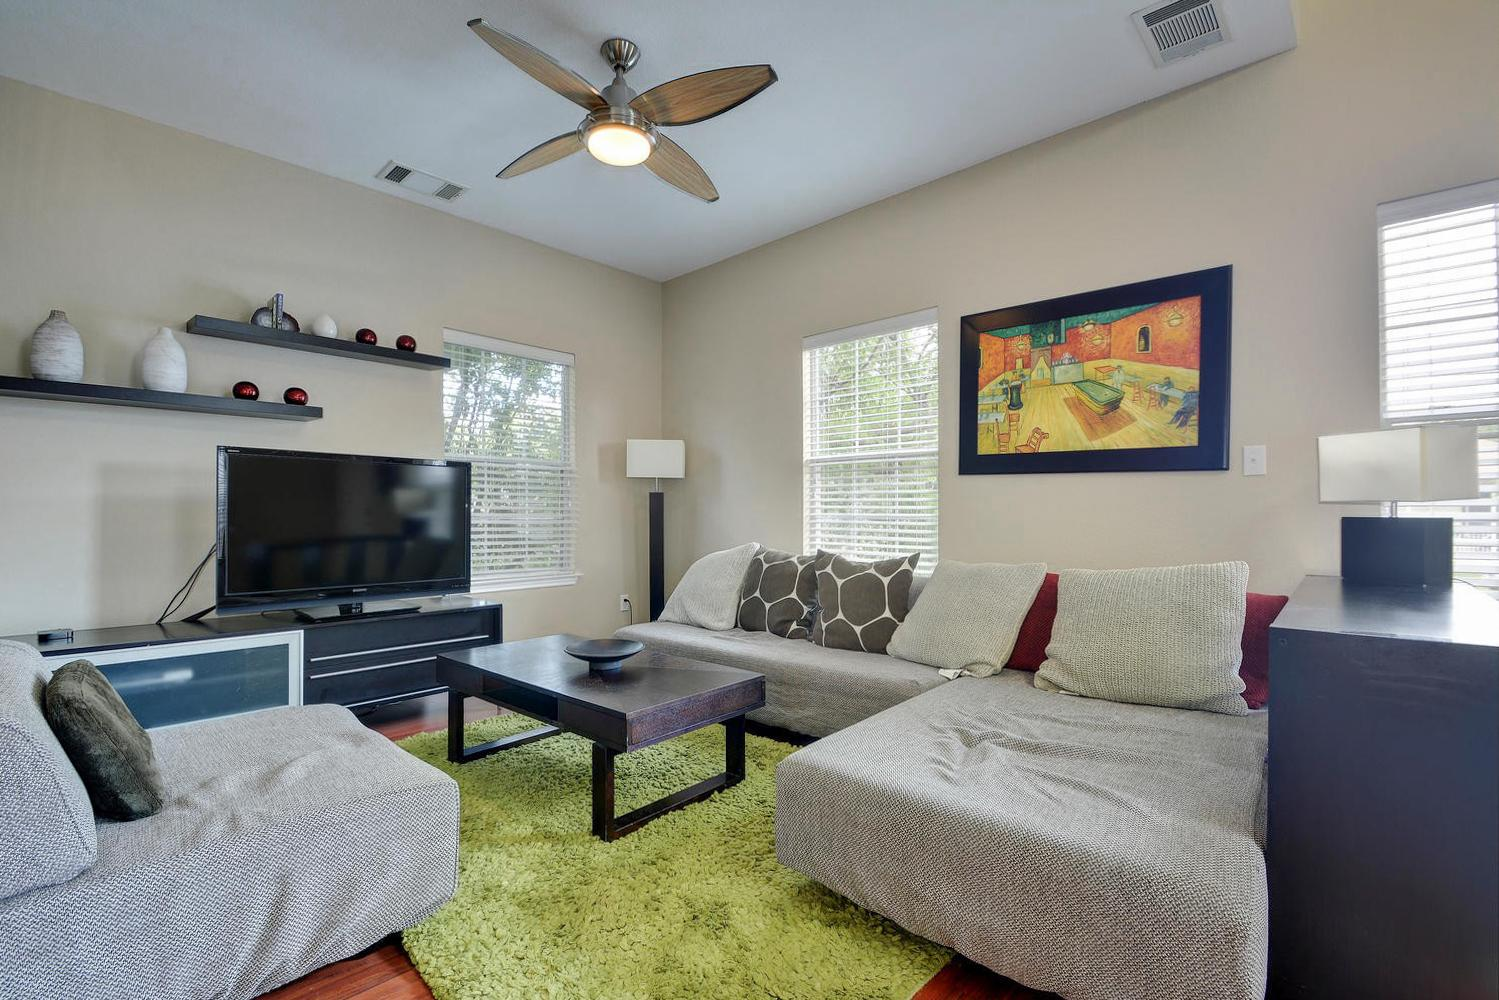 This home is professionally managed by TurnKey Vacation Rentals.